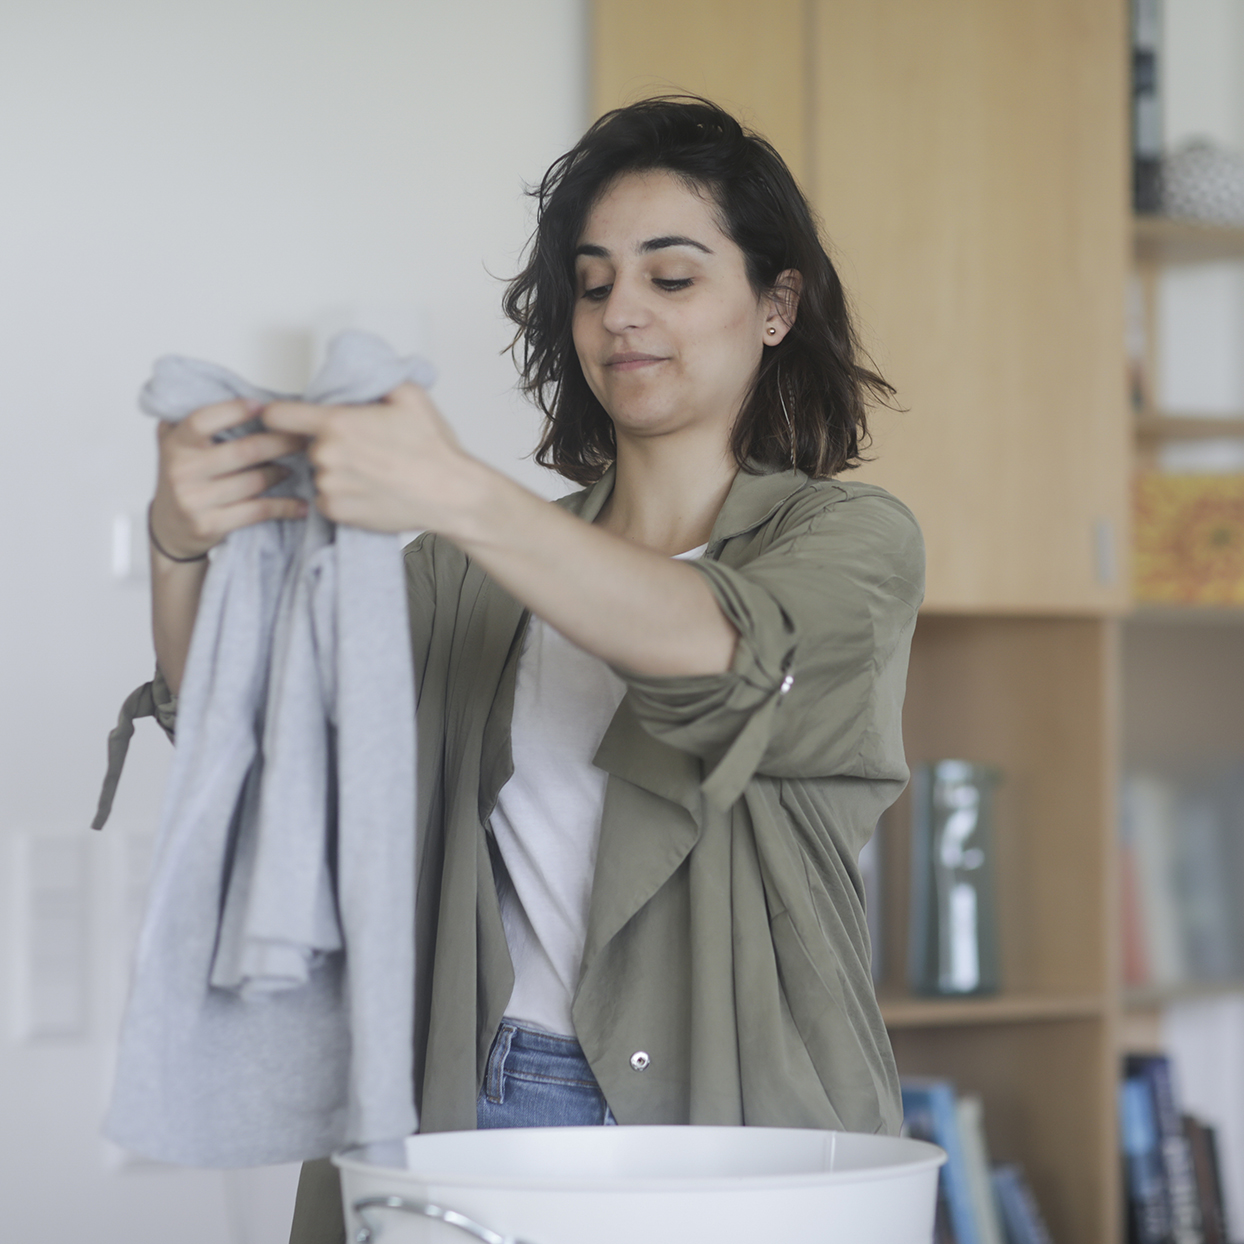 Woman standing in the utility room folding clothing